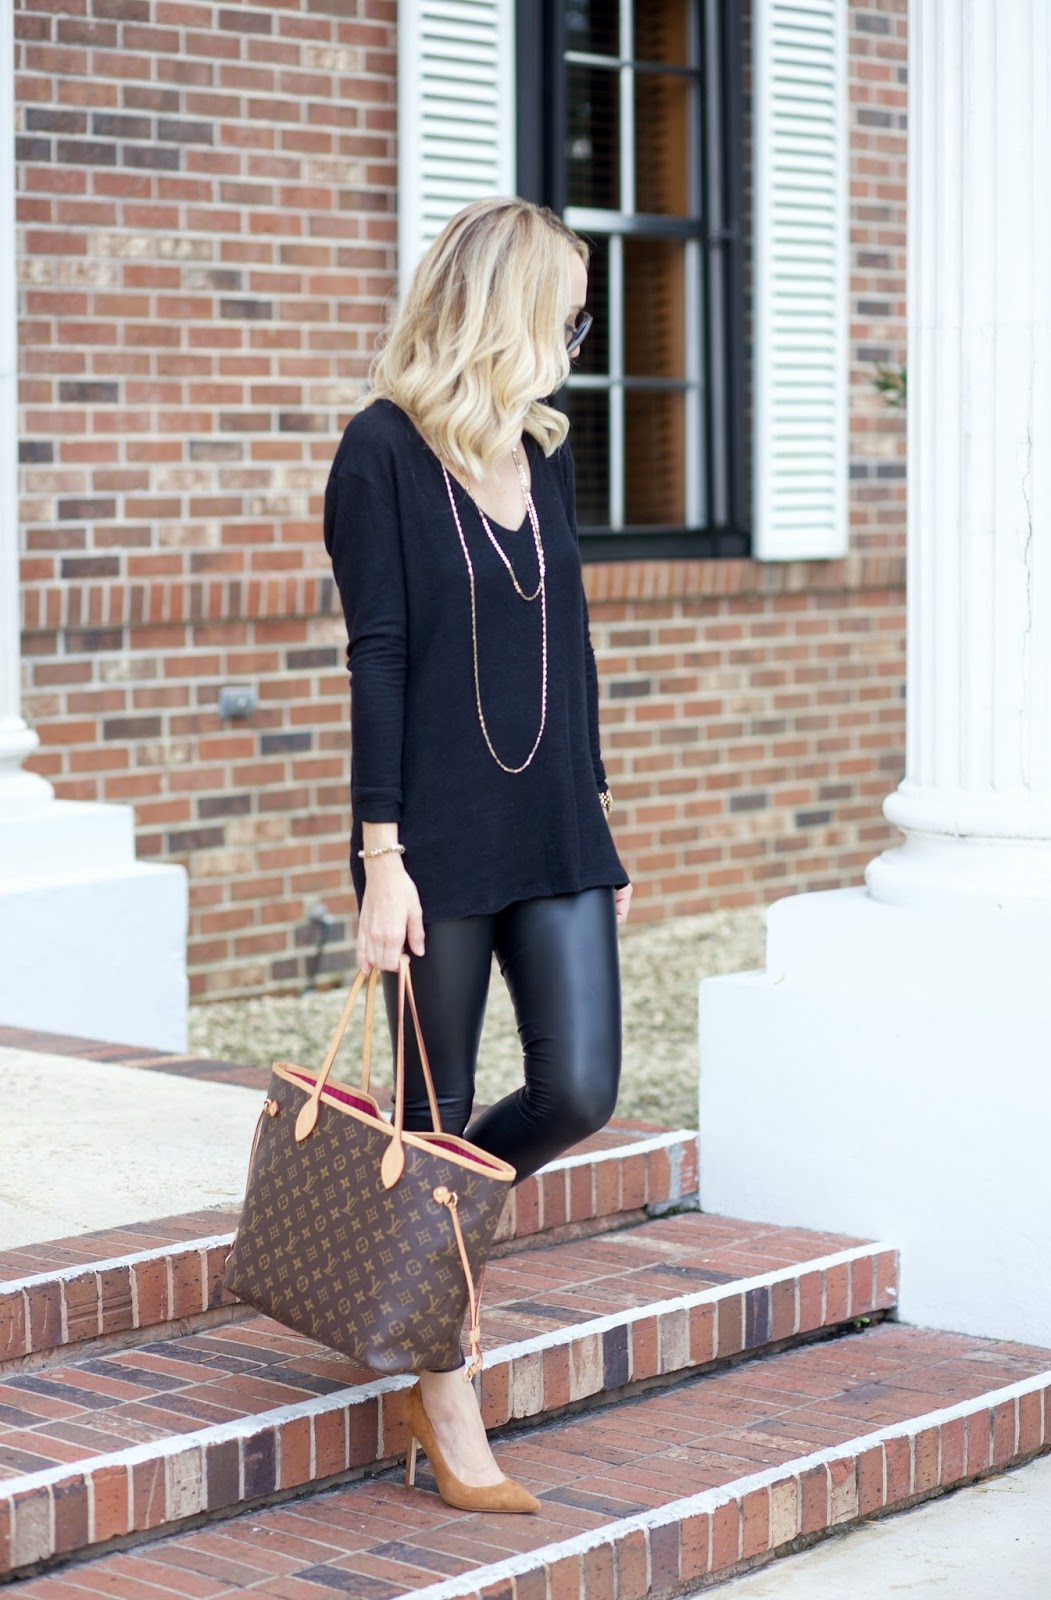 83e0b30b979ef6 Sweater: BP also love this and this, Leggings: BP (obsessed $29) also love  these, Shoes: Ivanka Trump similar here and love these, Sunglasses: Porsche  ...